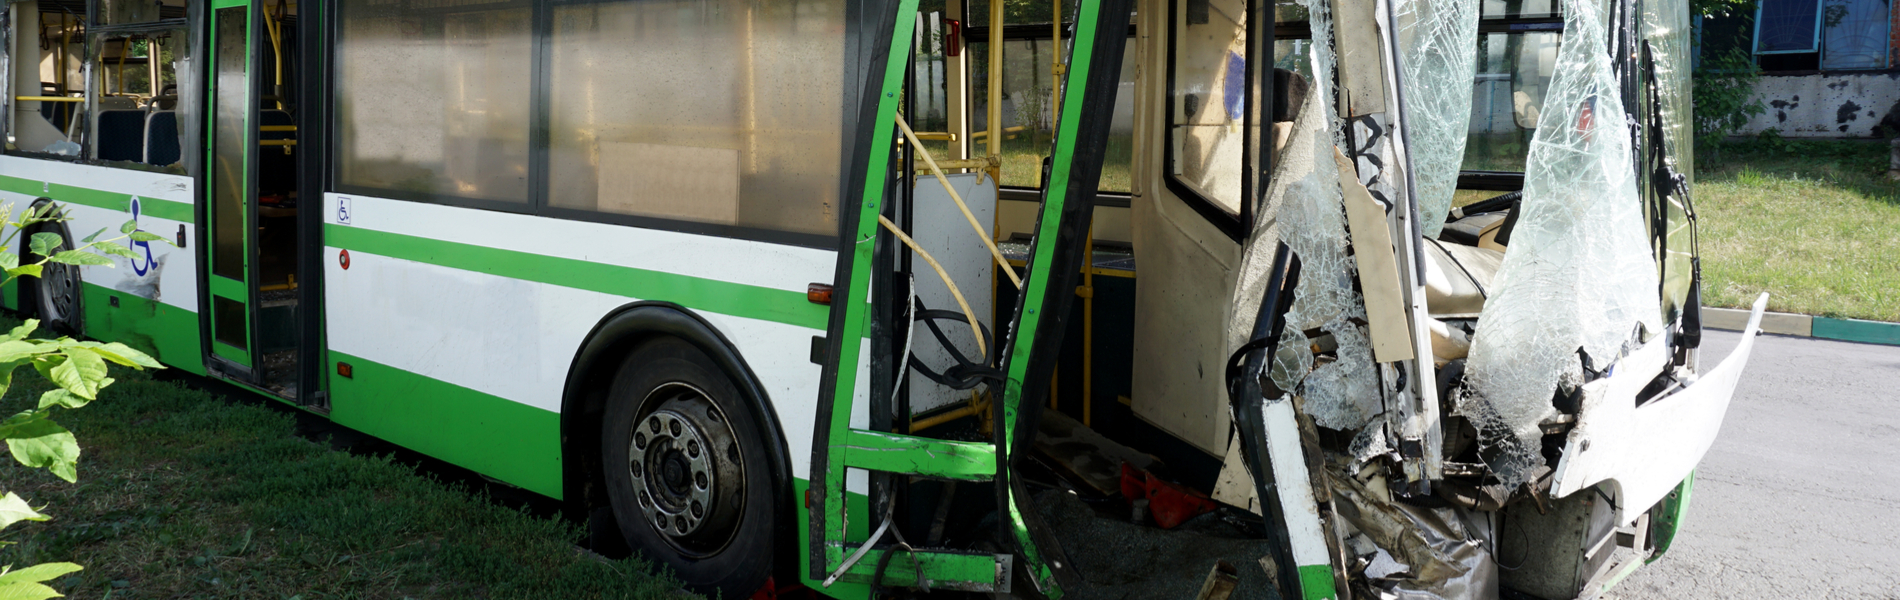 Bus Accidents